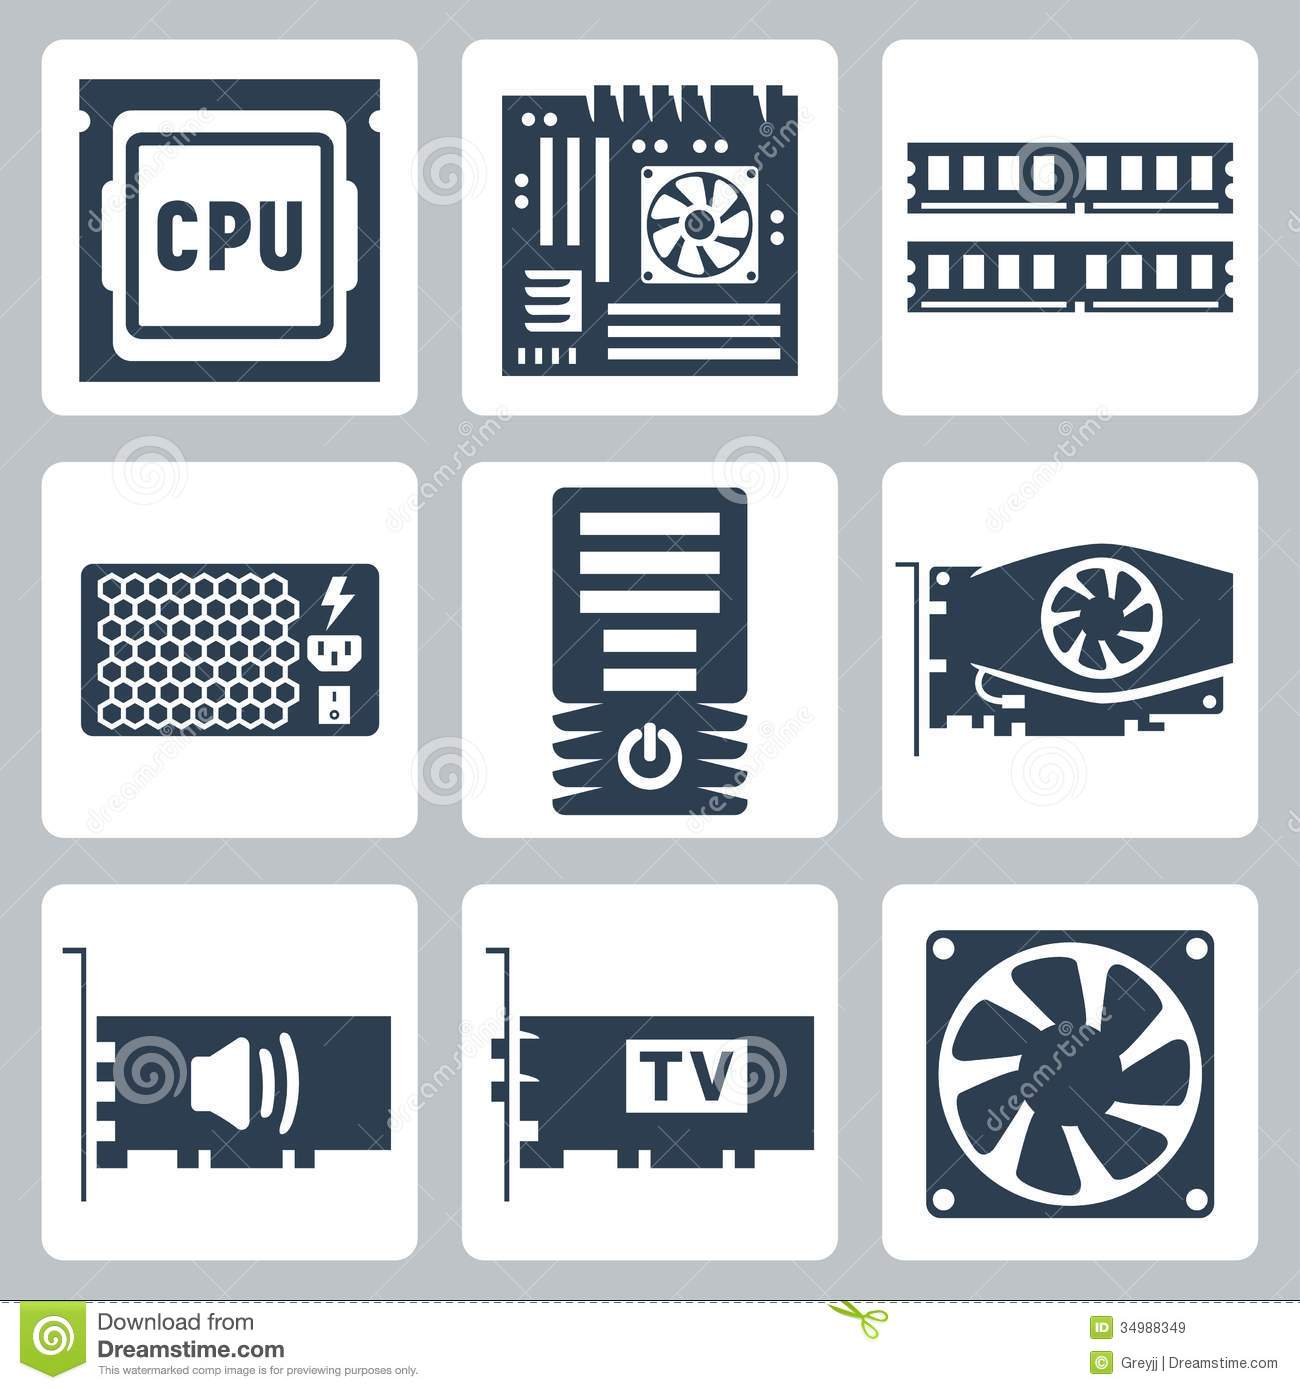 13 Hardware Management Icon Images